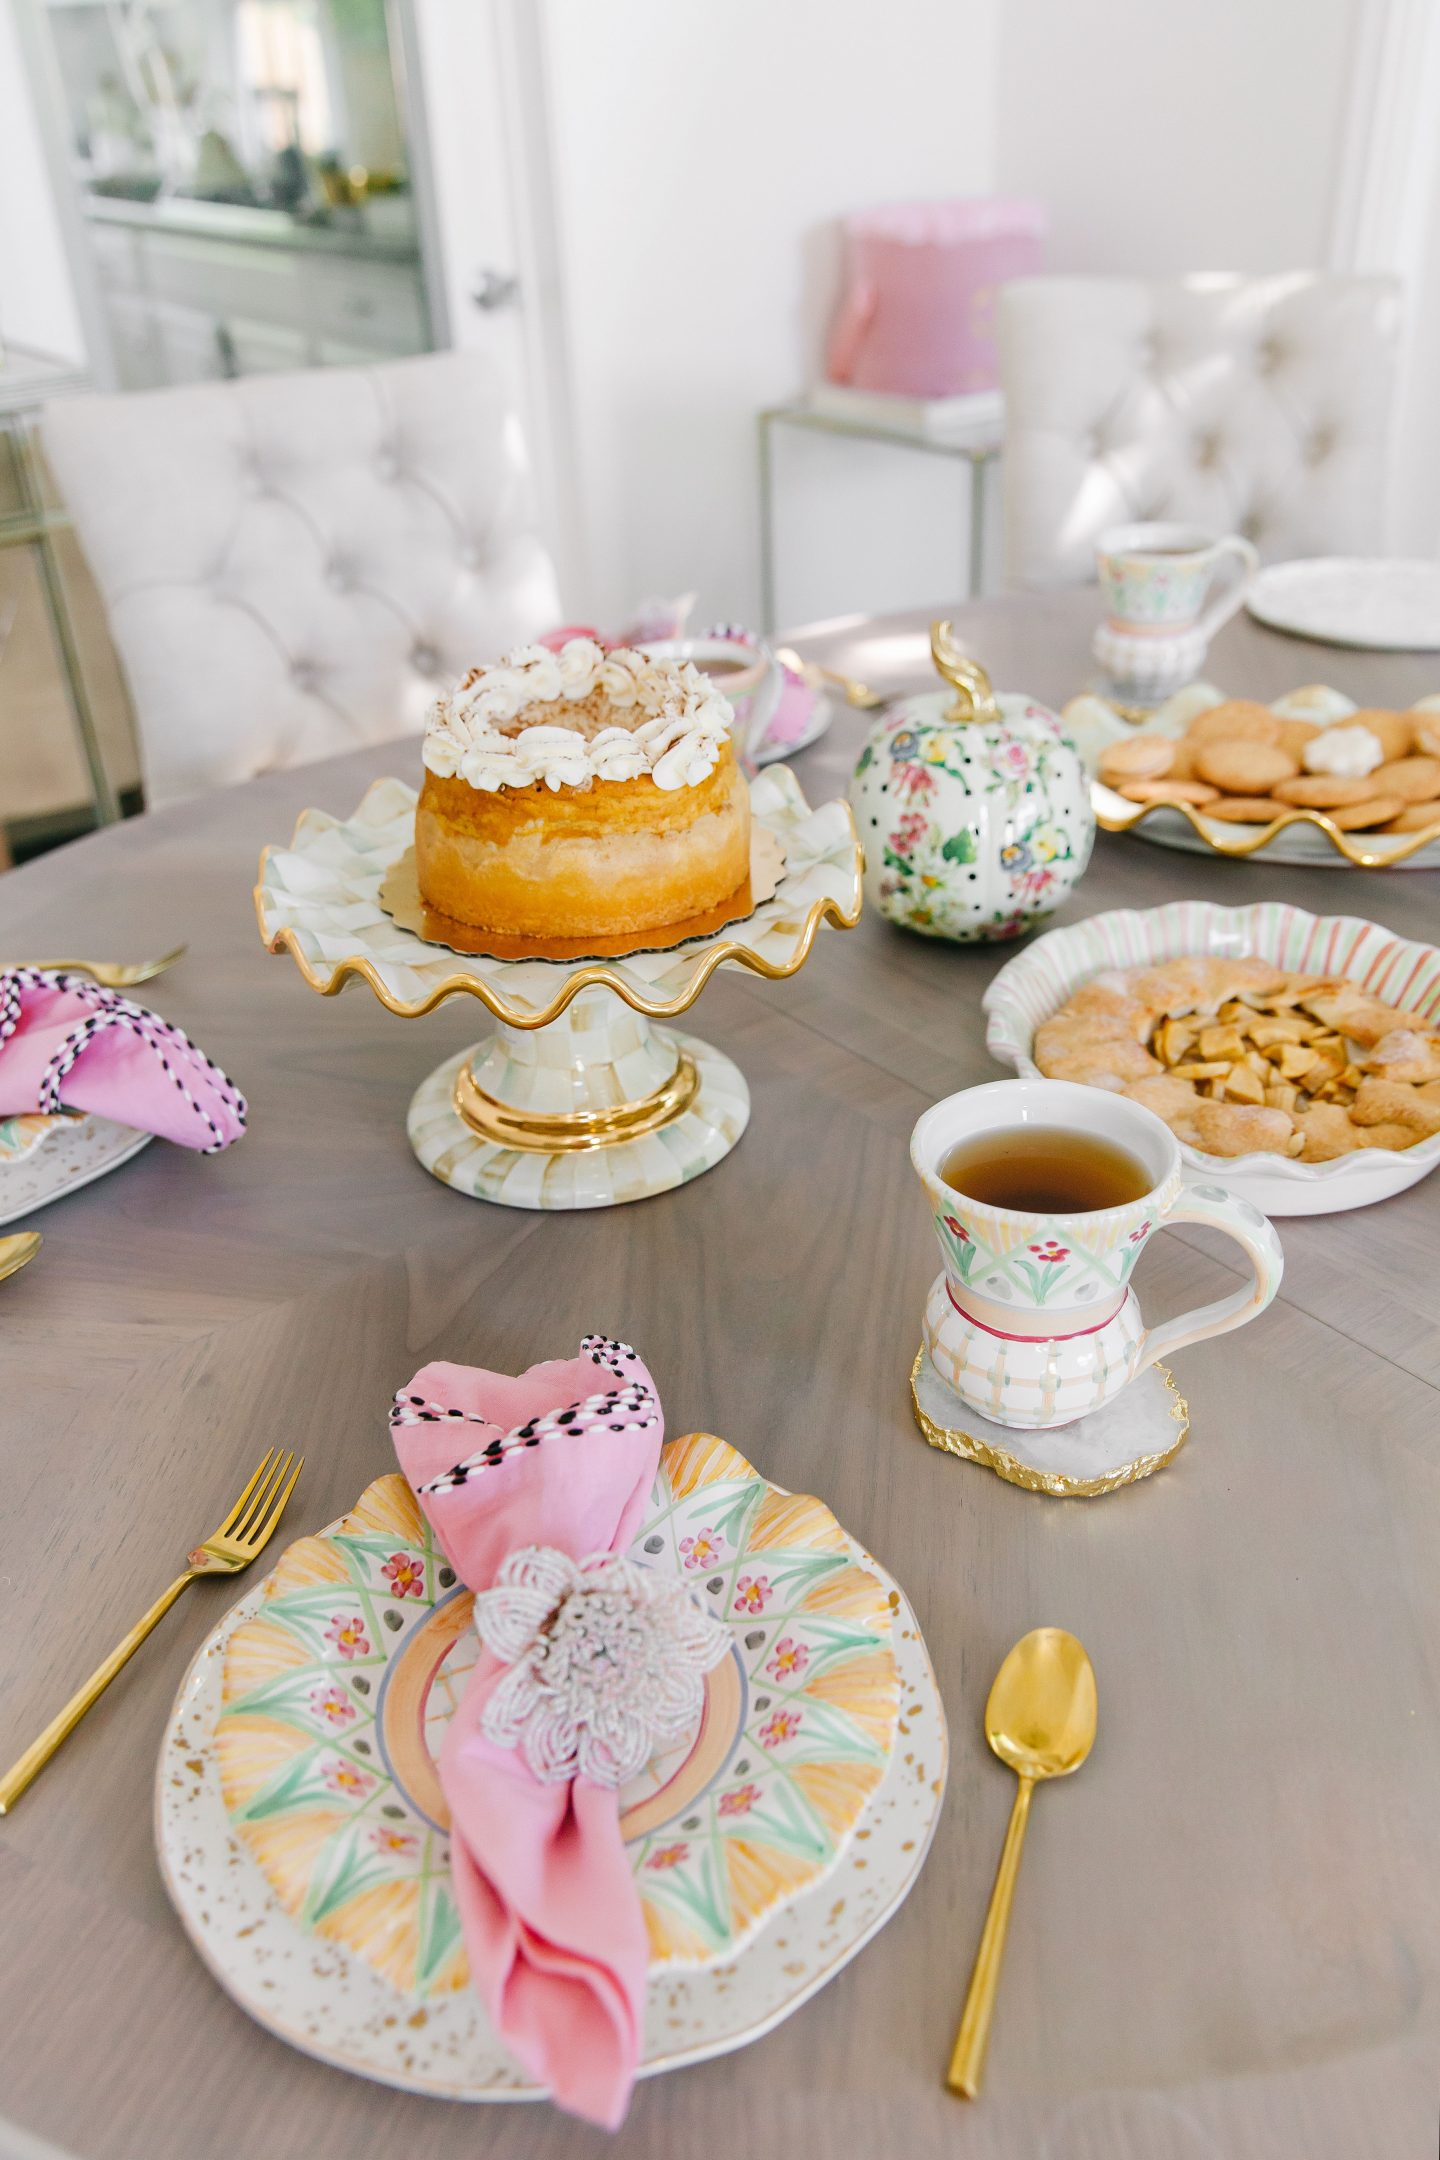 Top San Francisco fashion blog, Lombard and Fifth, is prepping for Fall with MacKenzie Childs! Check out this new whimsical MacKenzie Childs collection!